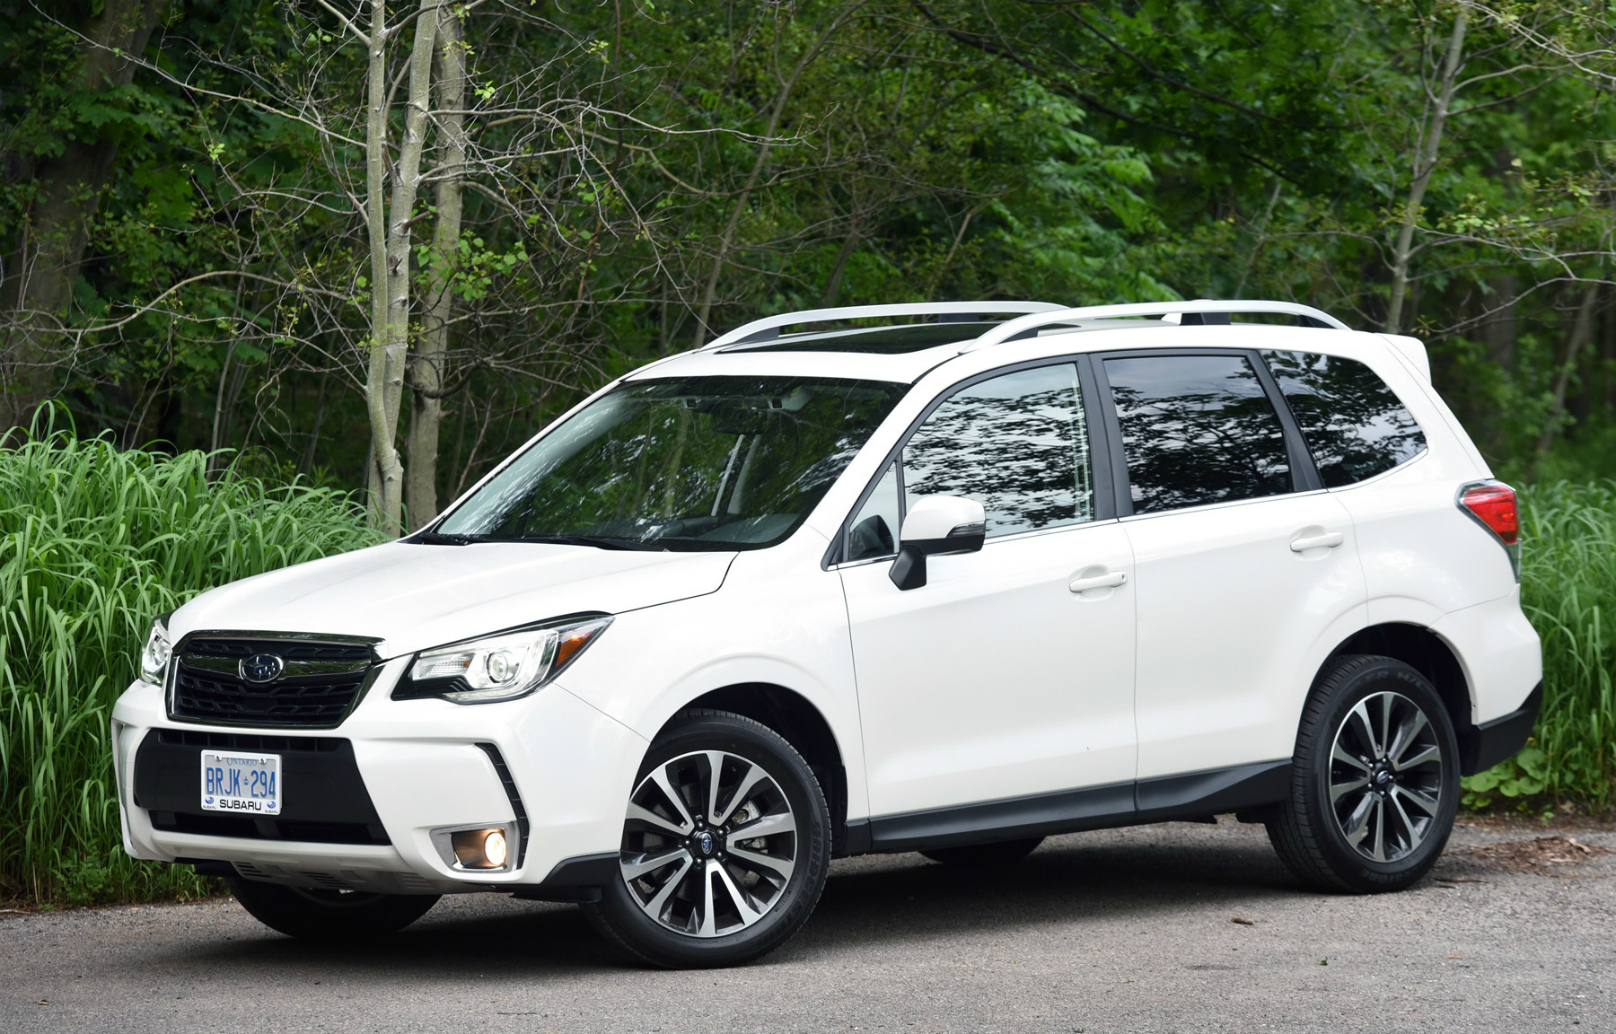 2018 subaru outback review new car release date and review 2018 amanda felicia. Black Bedroom Furniture Sets. Home Design Ideas